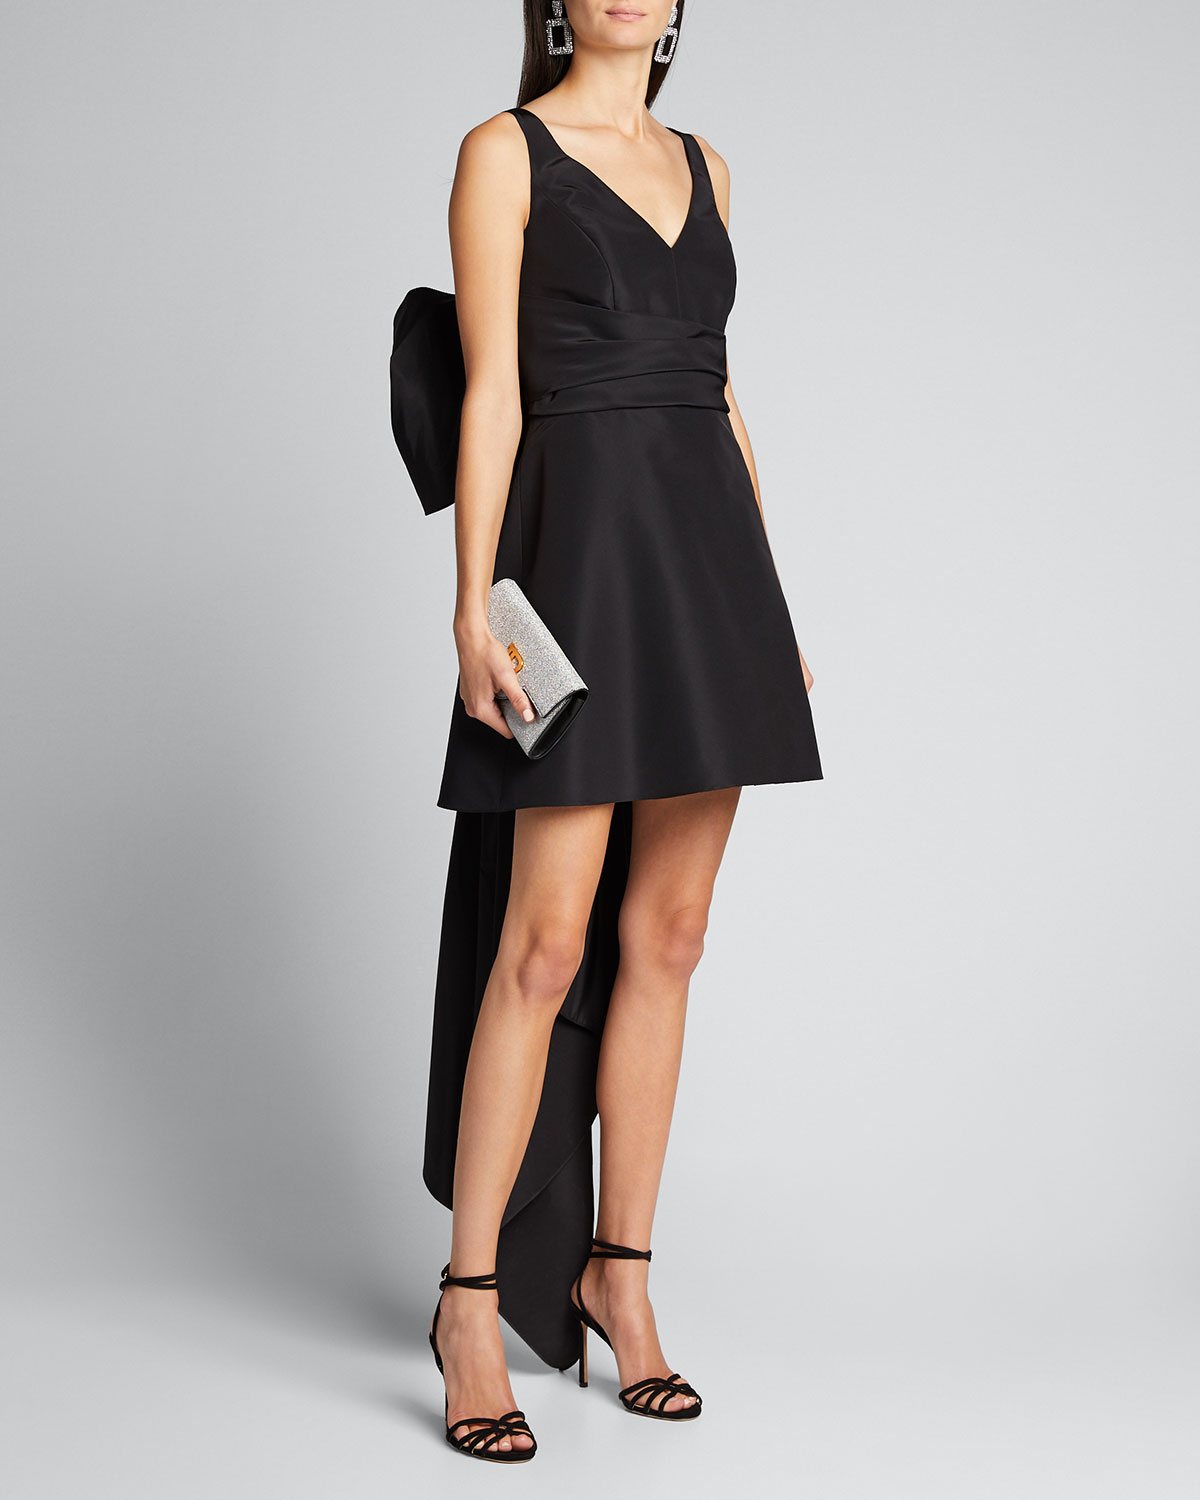 Carolina Herrera Dresses V-NECK A-LINE MINI DRESS W/ BACK BOW DETAIL